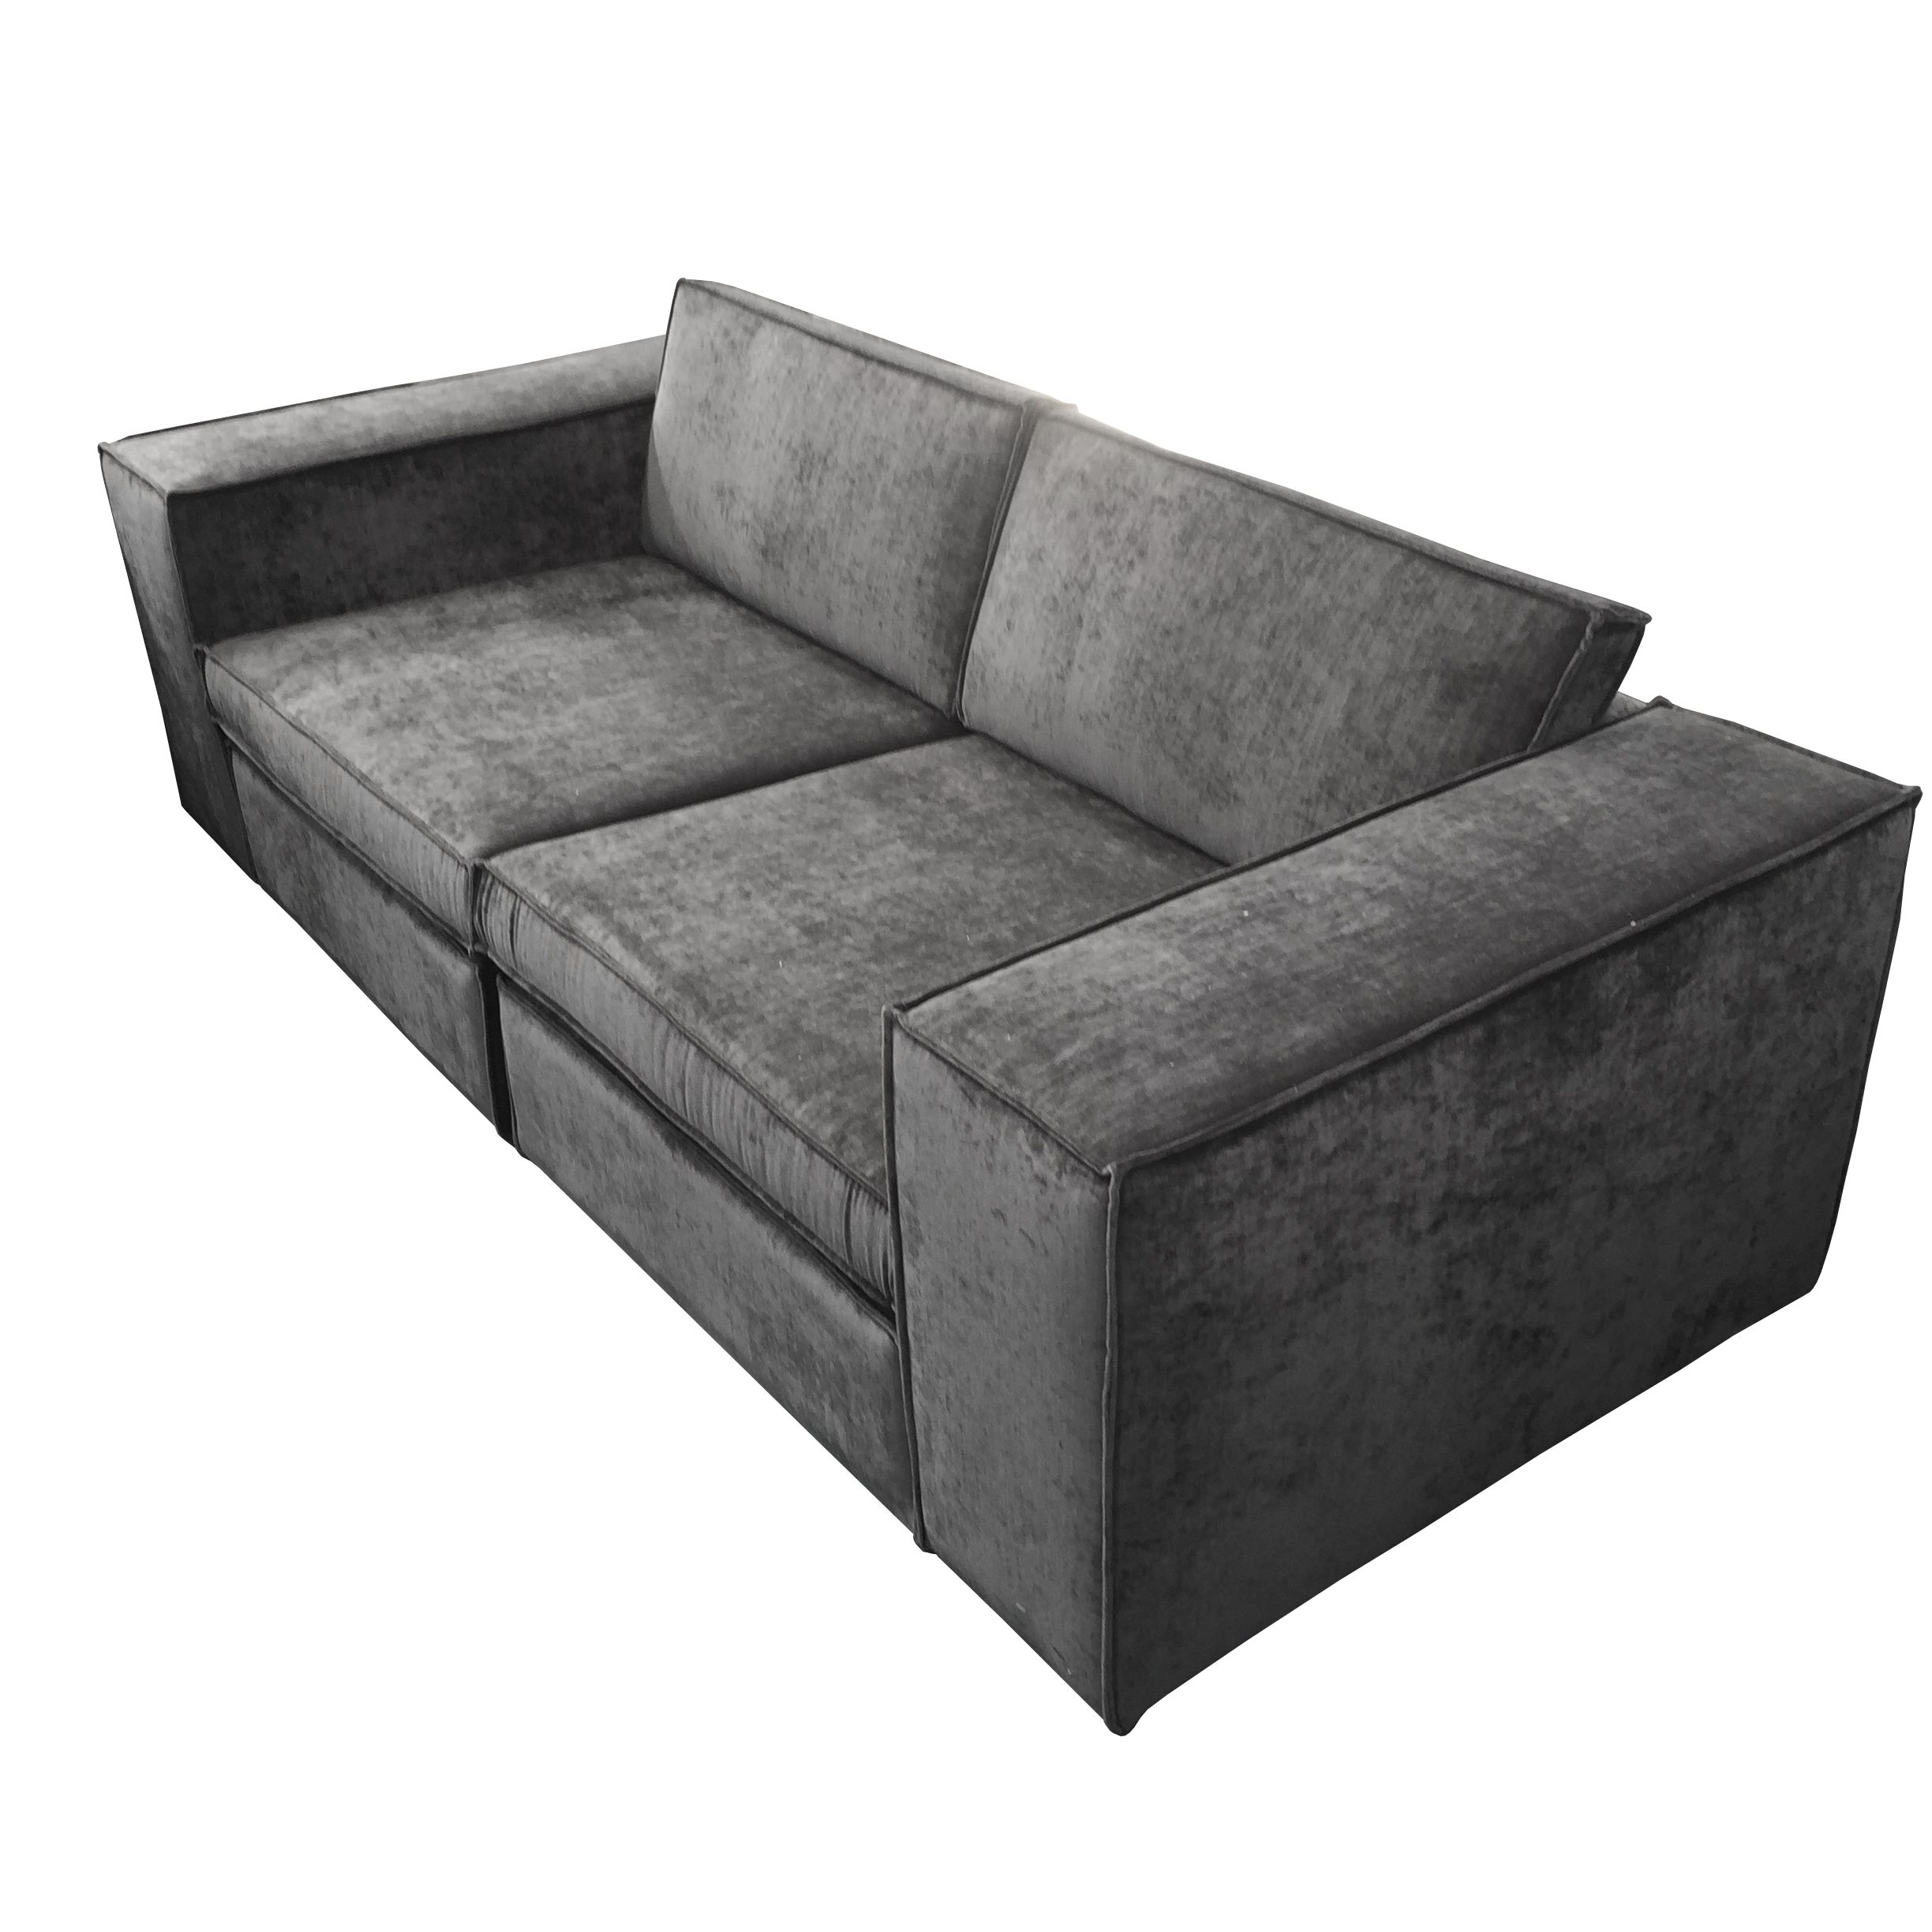 Oasis Sofa in Gray Crate and Barrel Casita Linda